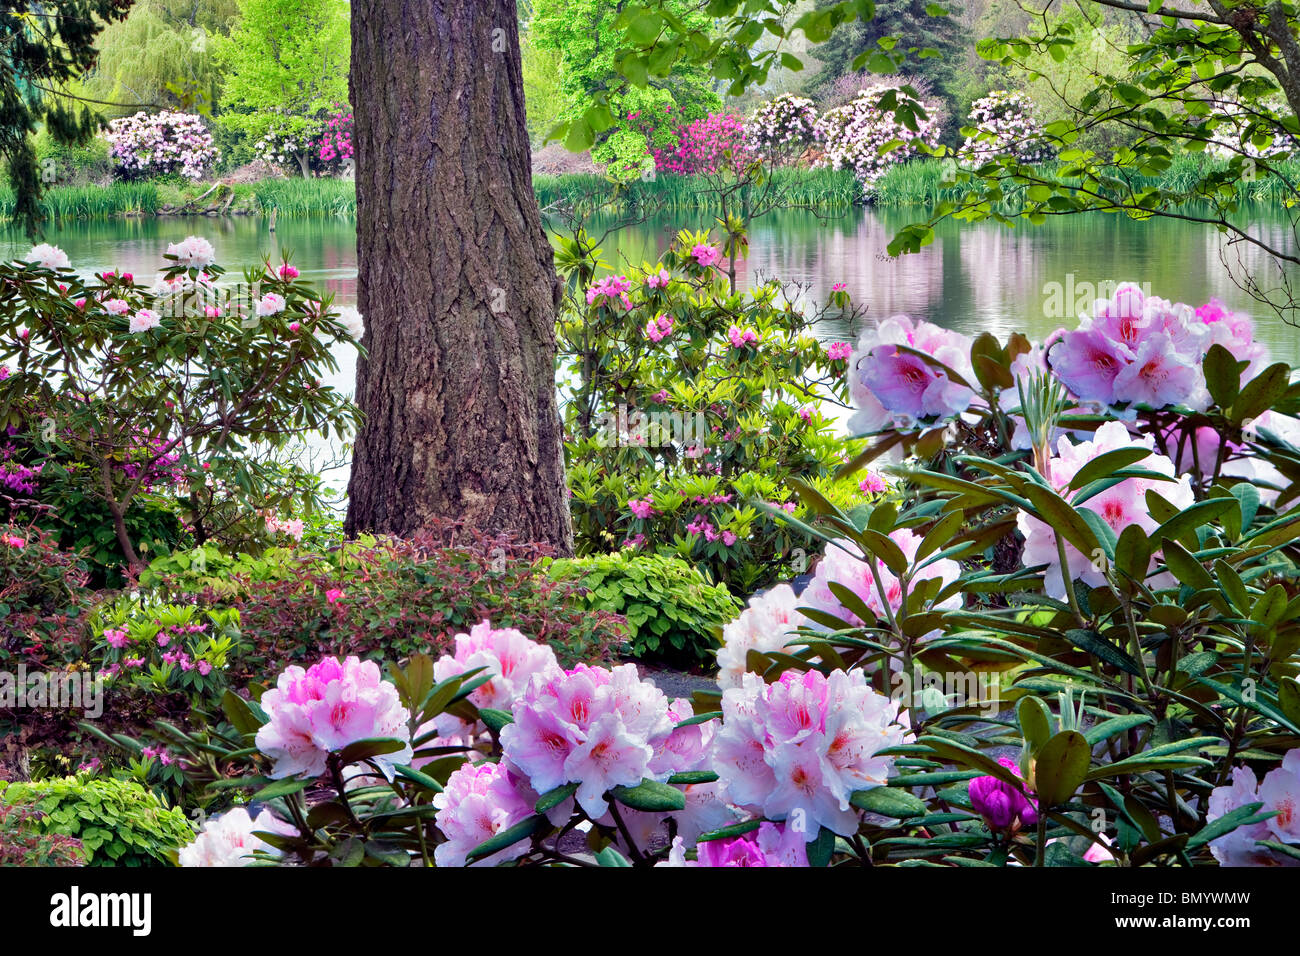 Rhododendrons in bloom with pond at crystal springs rhododendron stock photo royalty free image for Crystal springs rhododendron garden